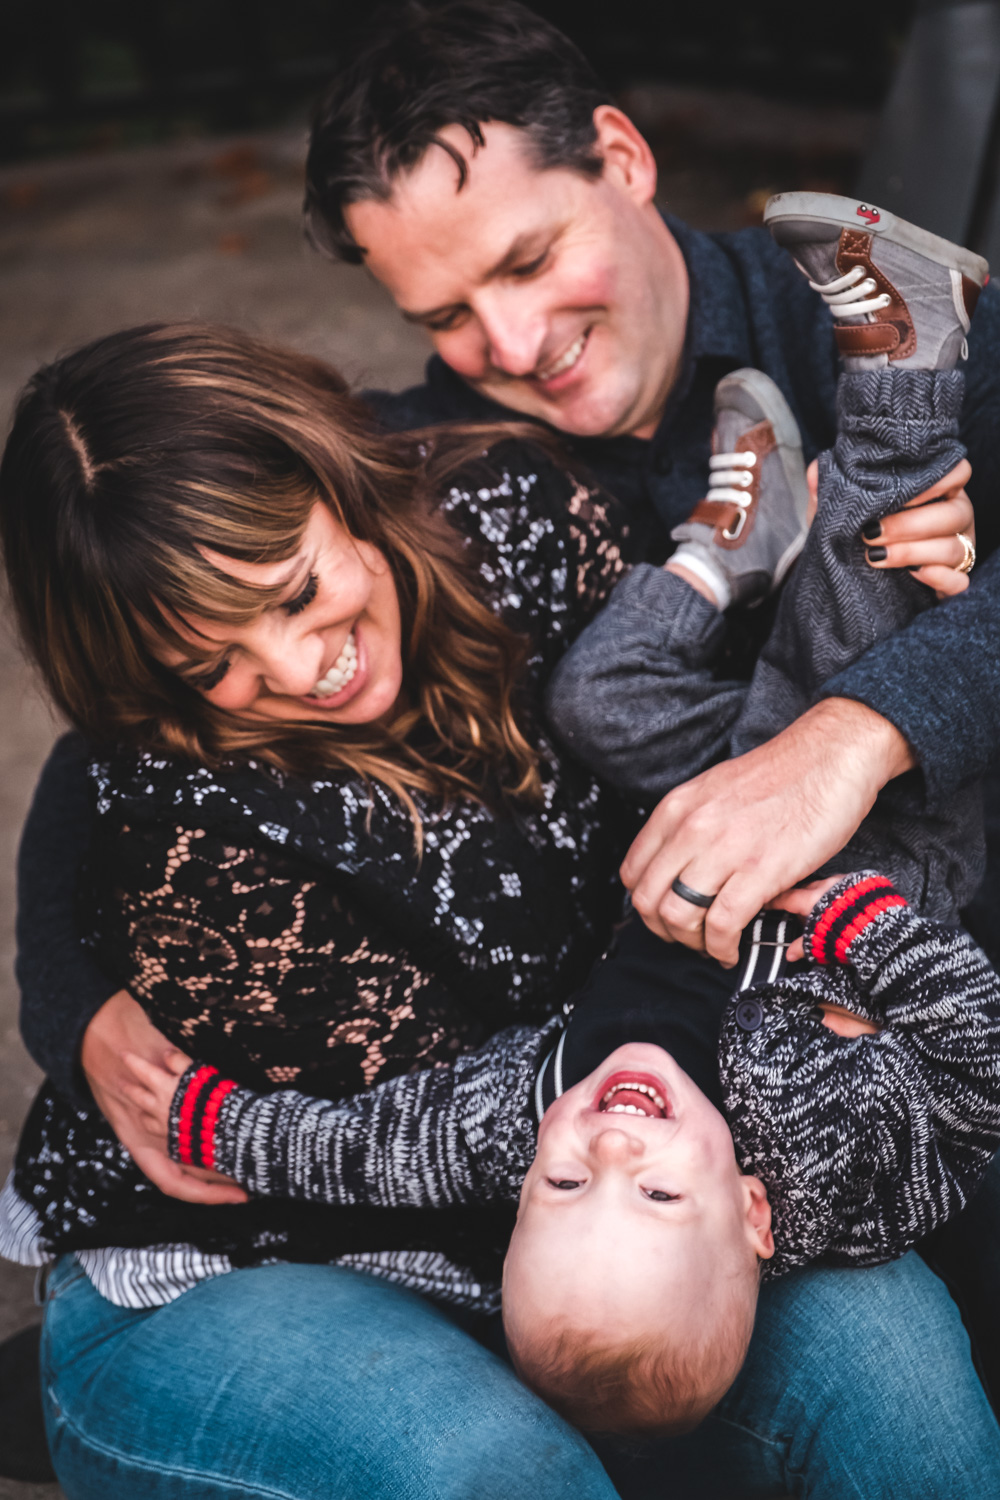 family-playing-photo-session-vancouver.jpg